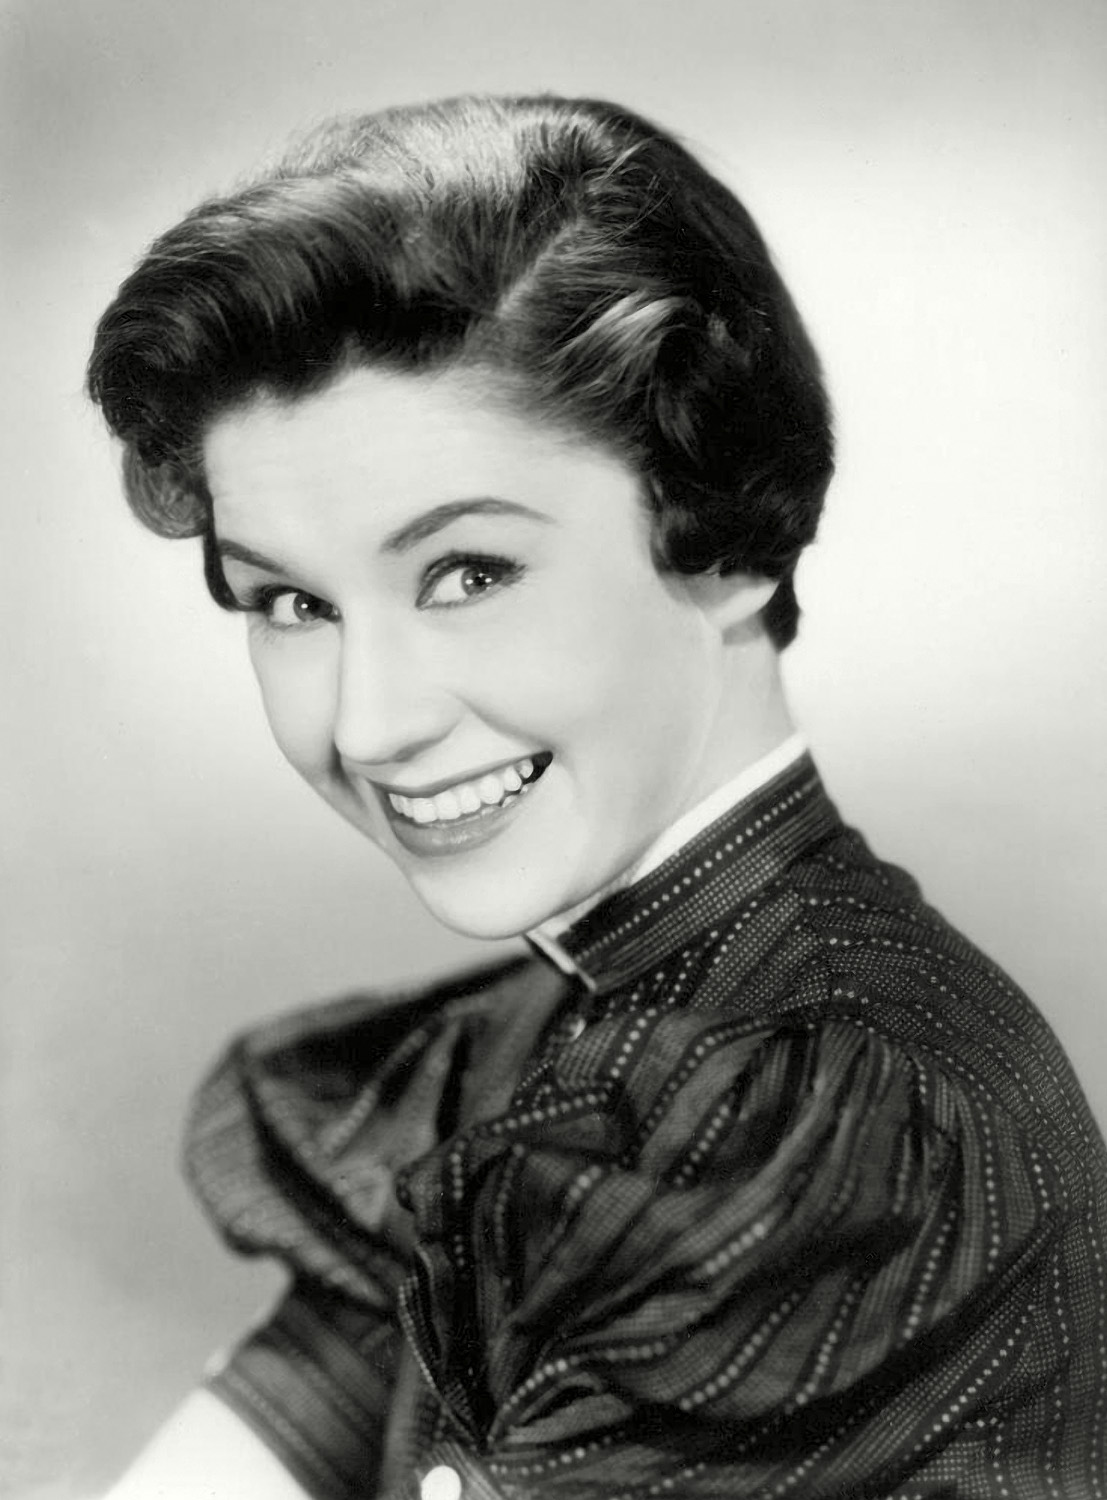 Lucy Griffiths (actress, born 1919) advise